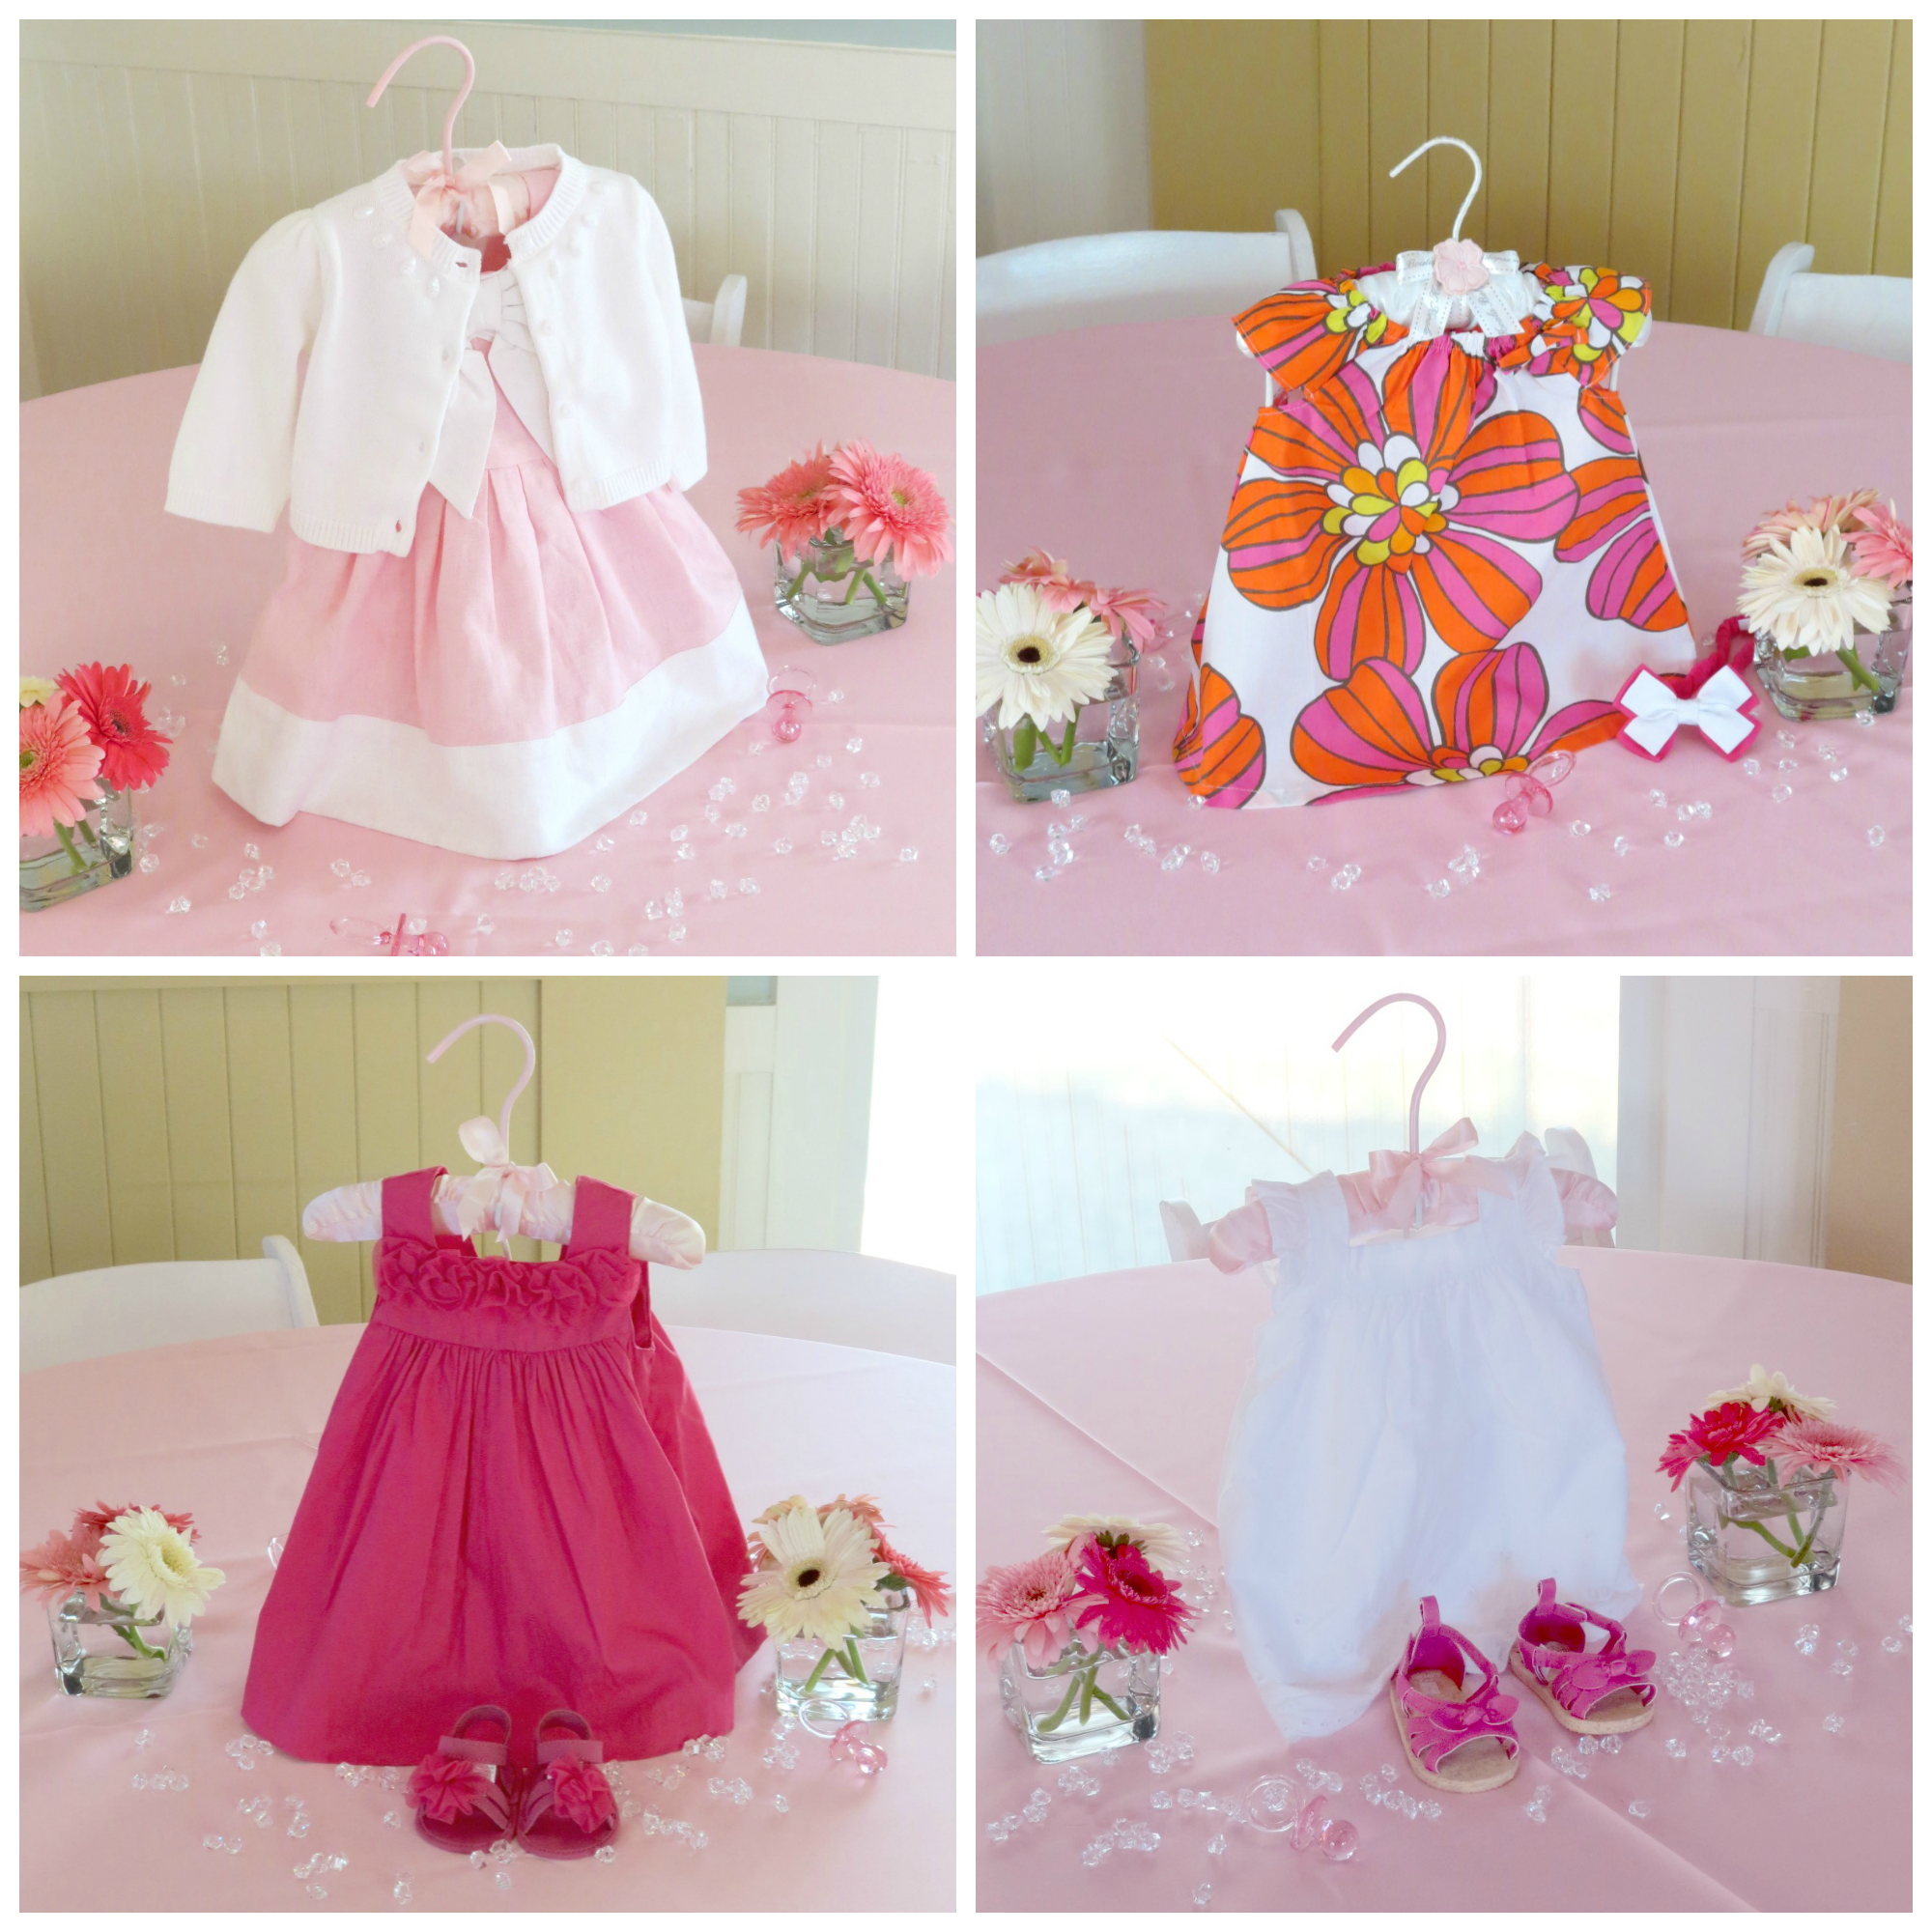 DIY Baby Dress Centerpiece